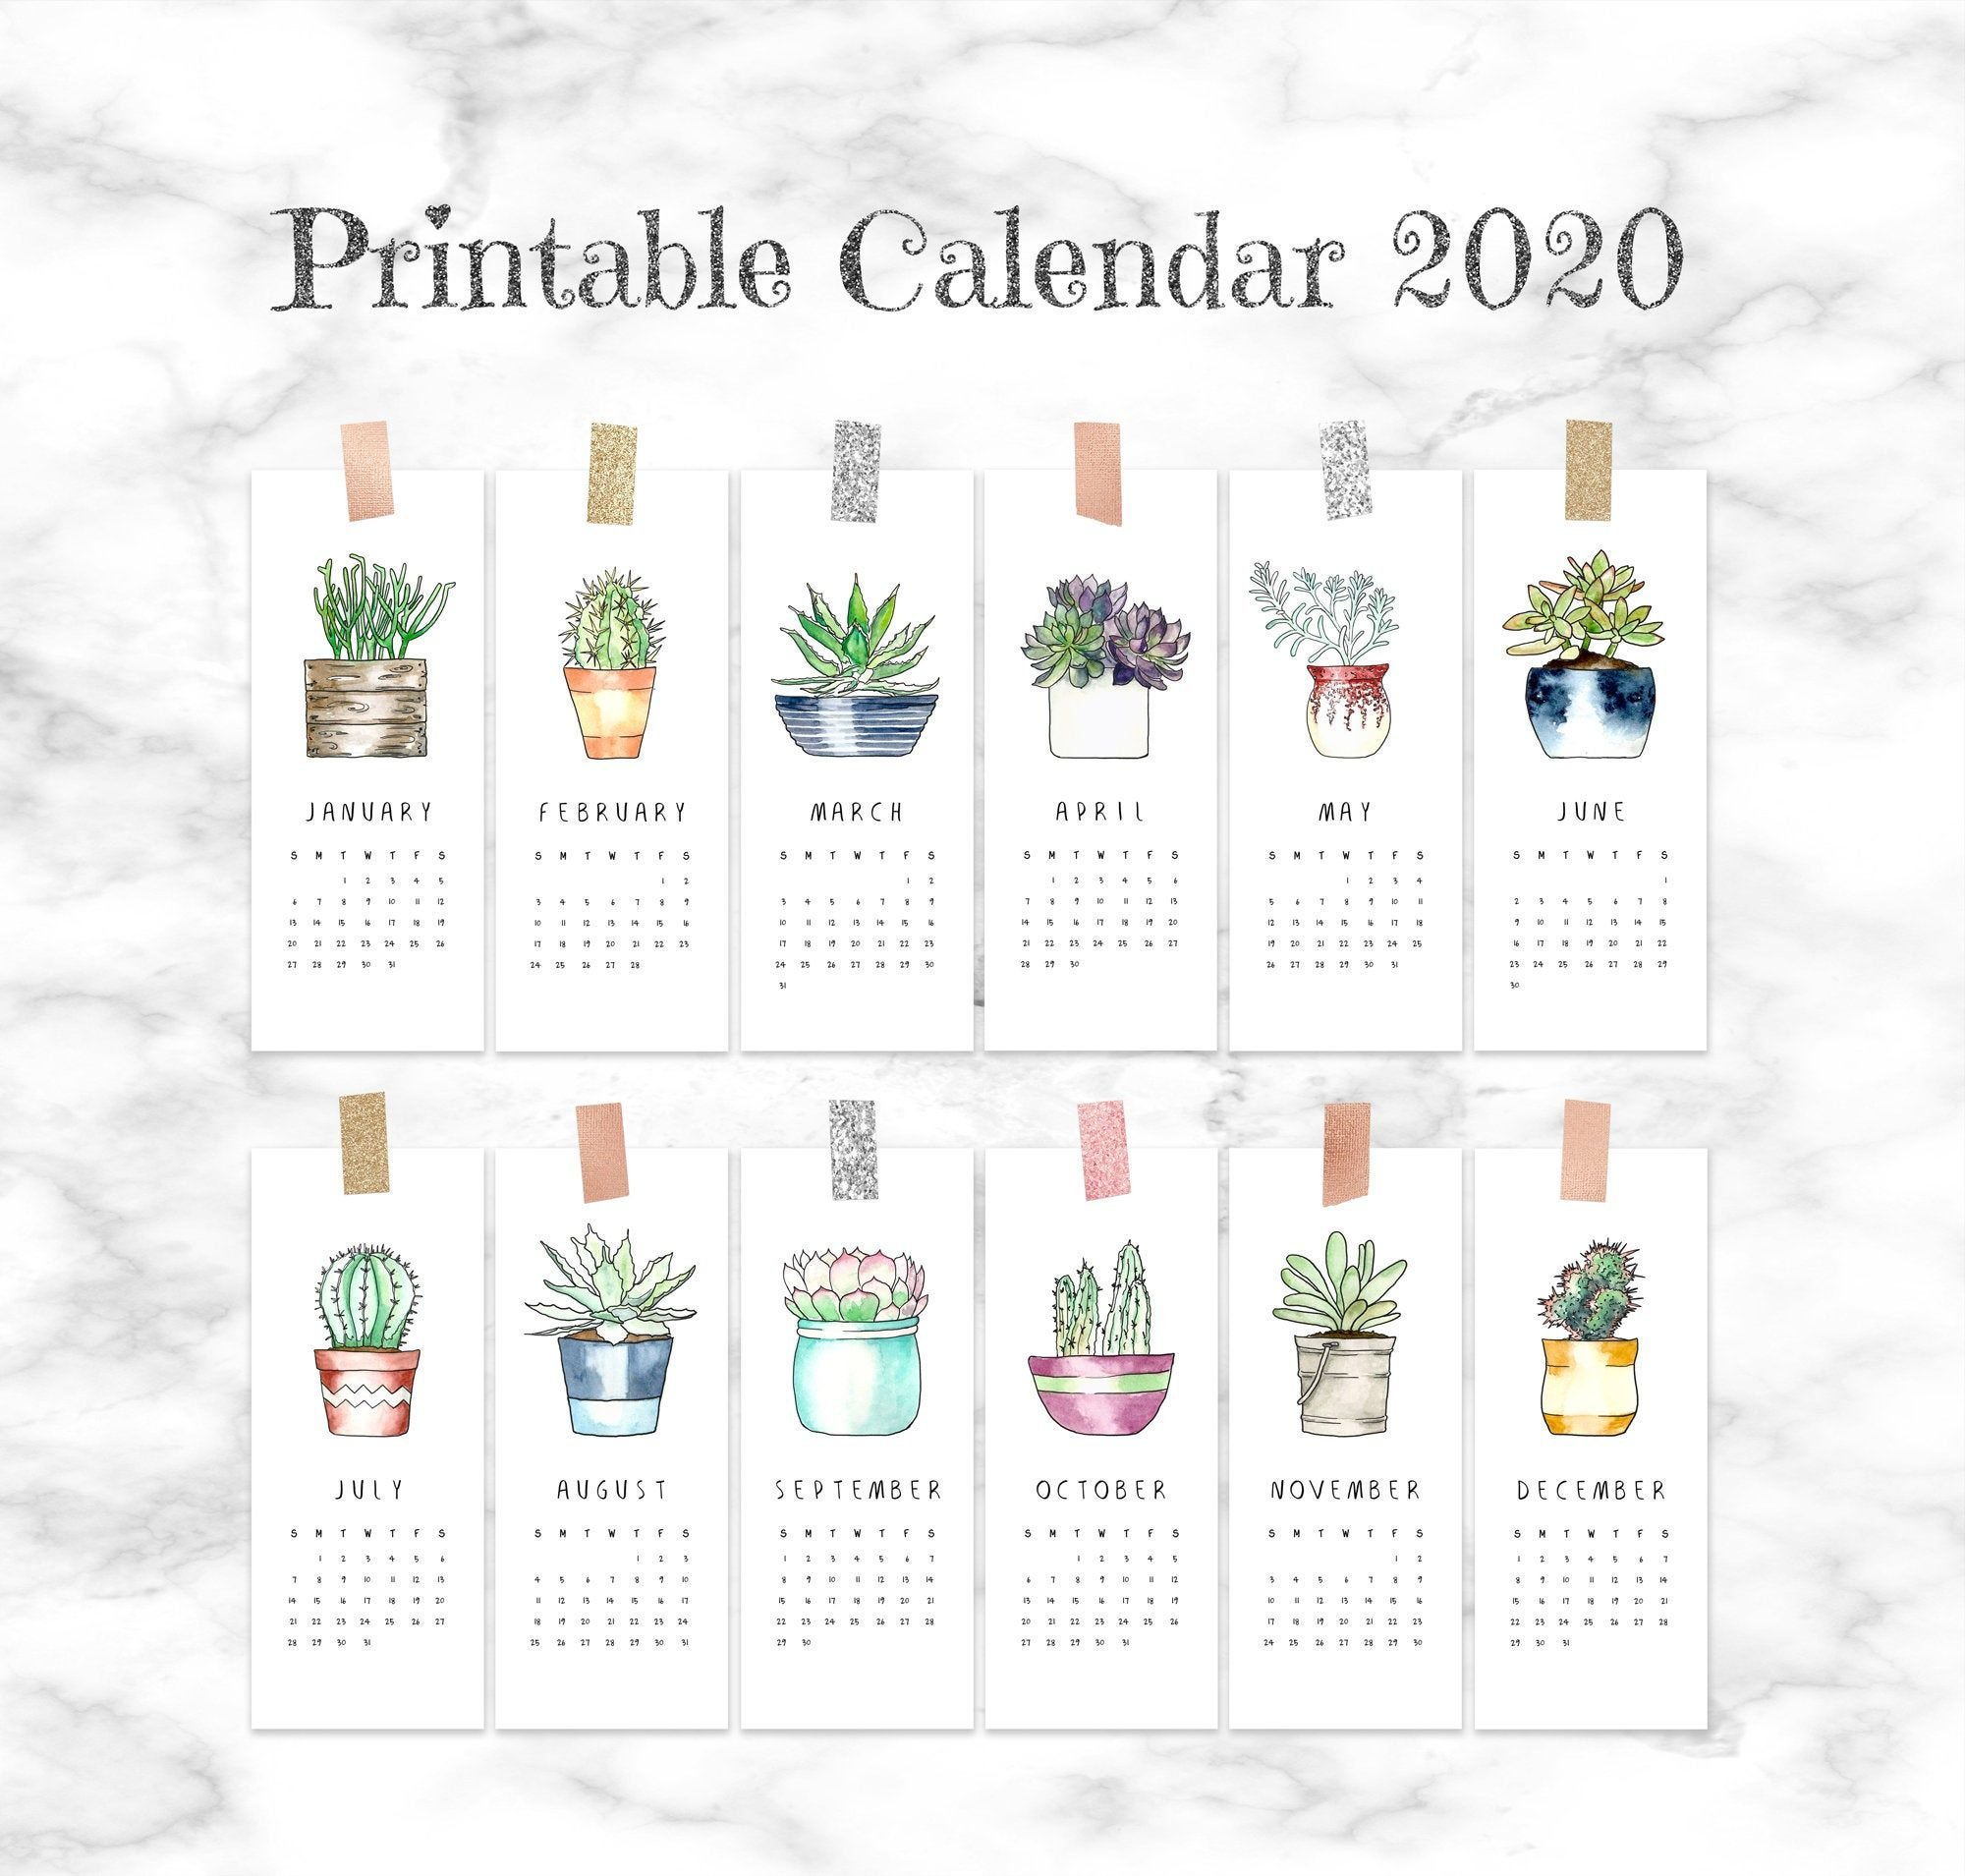 2020 Calendar Printable Pages, Small Monthly Calendar 2020 Small Calendar Page To Print For Desk